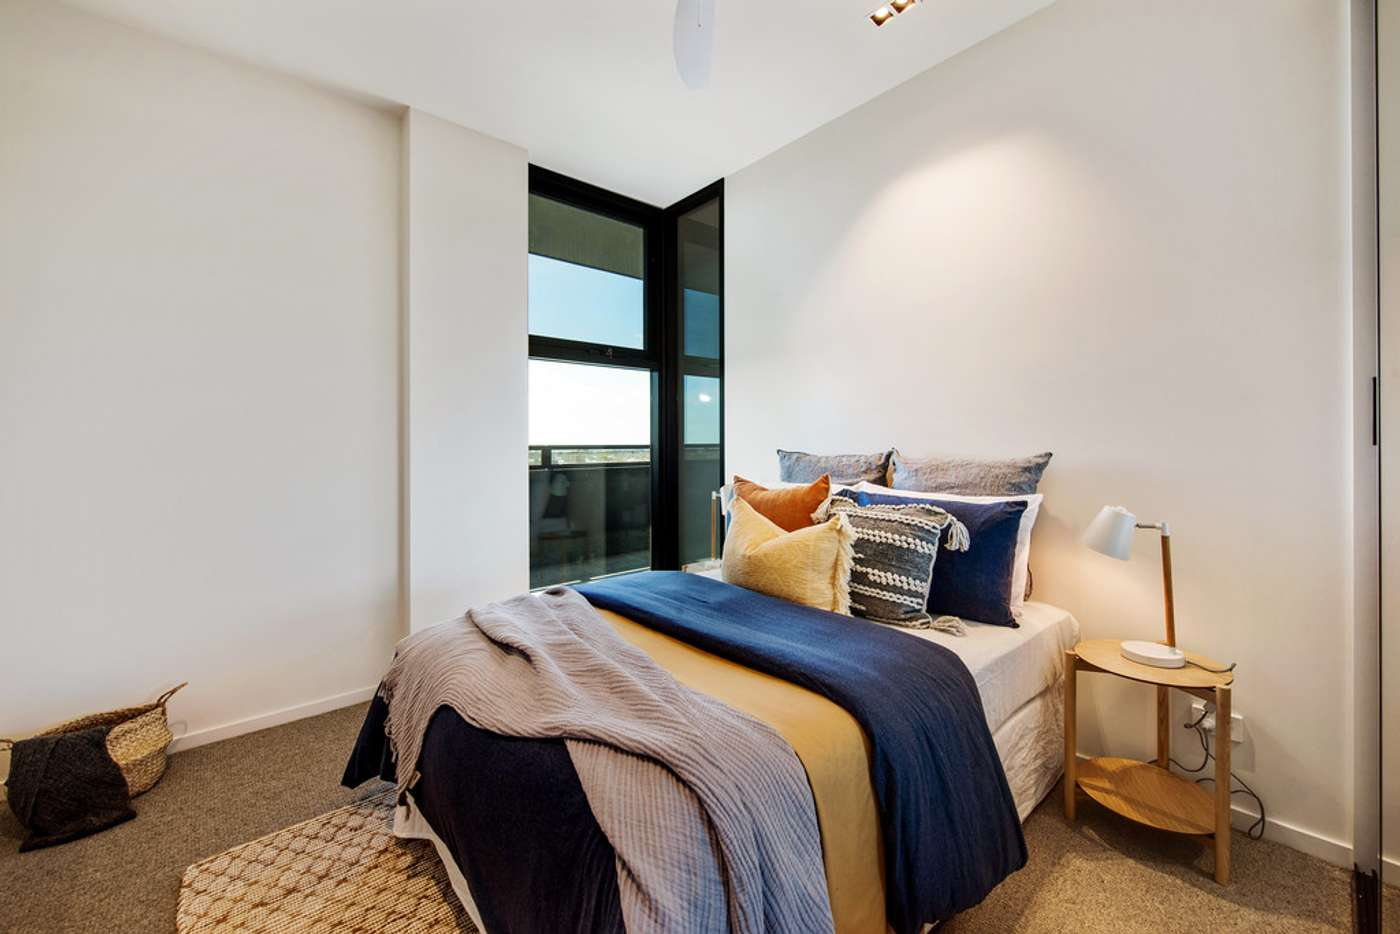 Sixth view of Homely apartment listing, The Artisan 604/3 Fifth Street, Bowden SA 5007